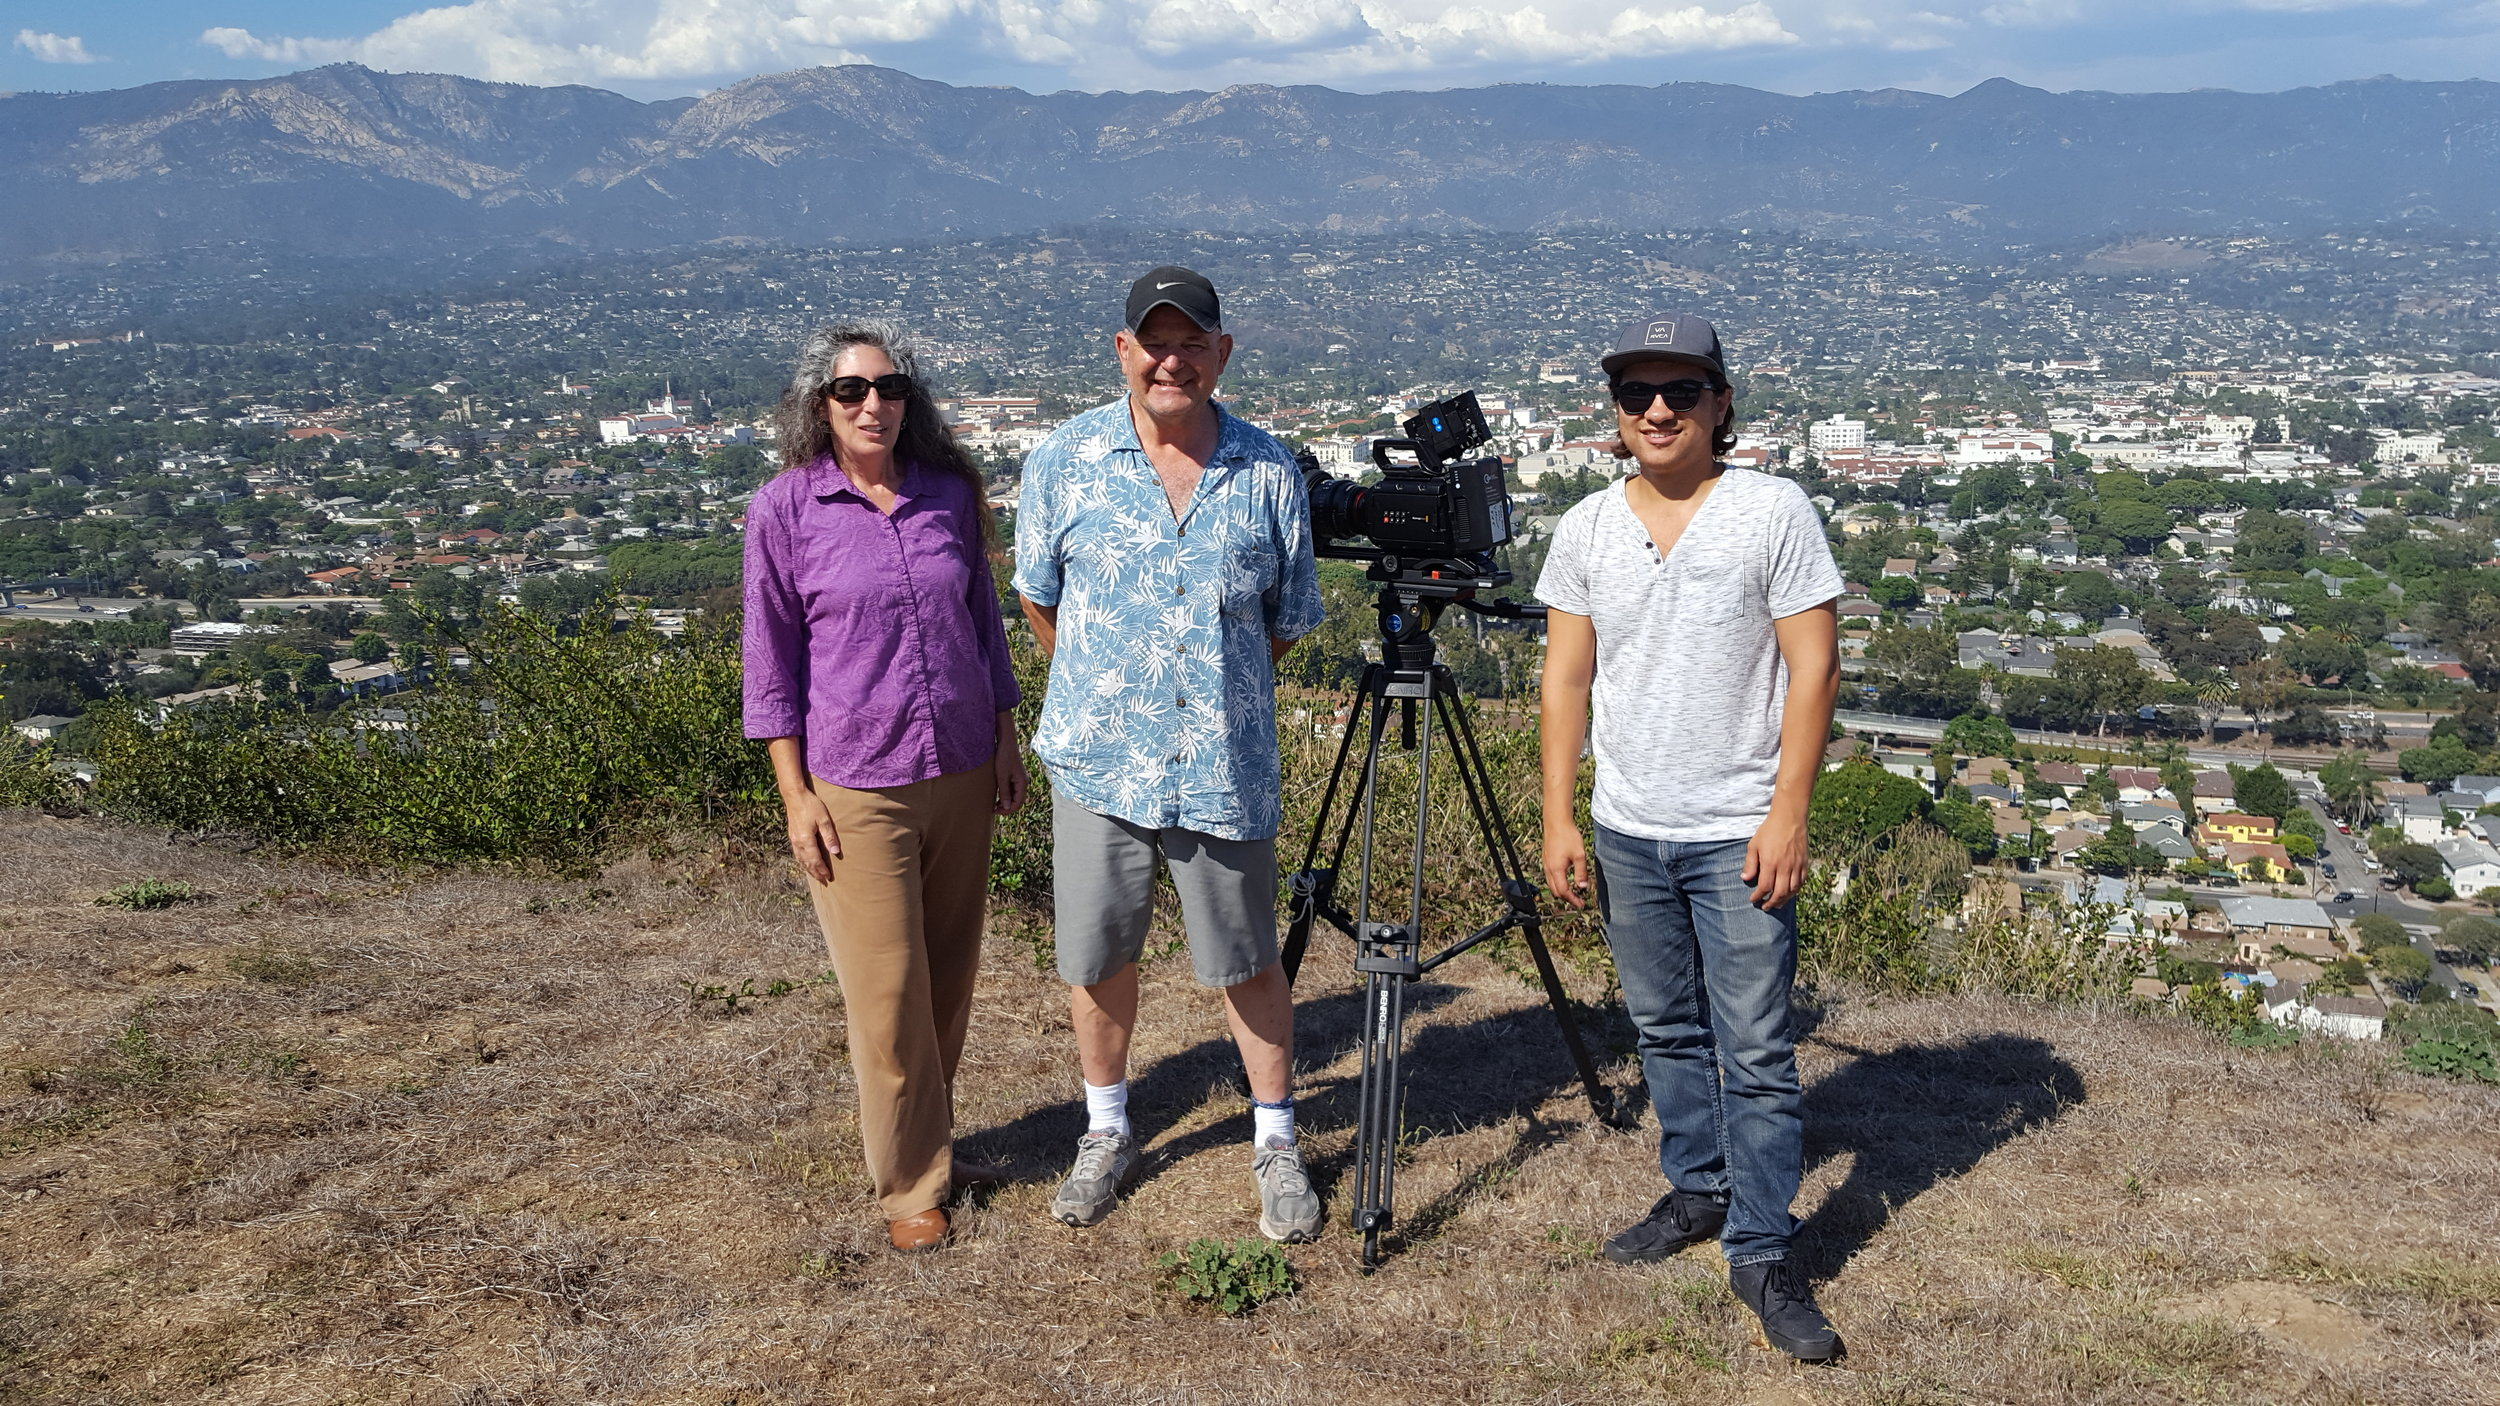 Producer Phebe with Director of Photography Howard Wexler and First AD Sean Cisowski